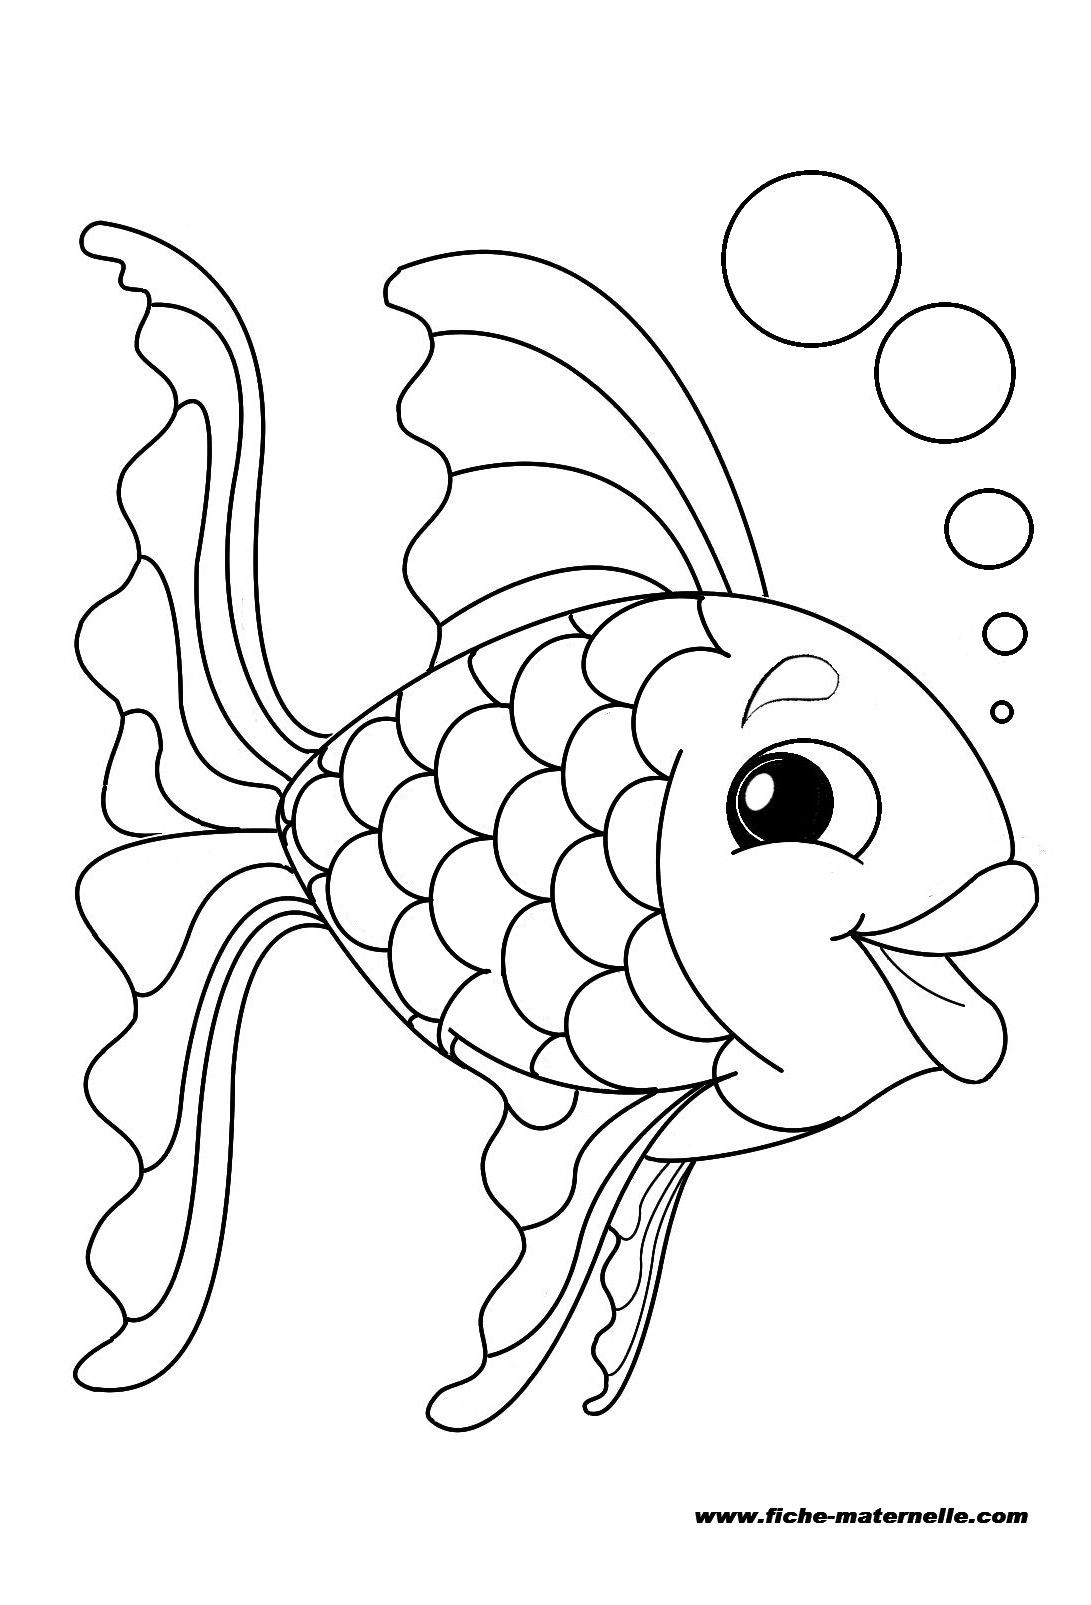 Coloriage : Un Poisson | Coloriage Poisson, Coloriage destiné Coloriage Poisson D Avril A Imprimer